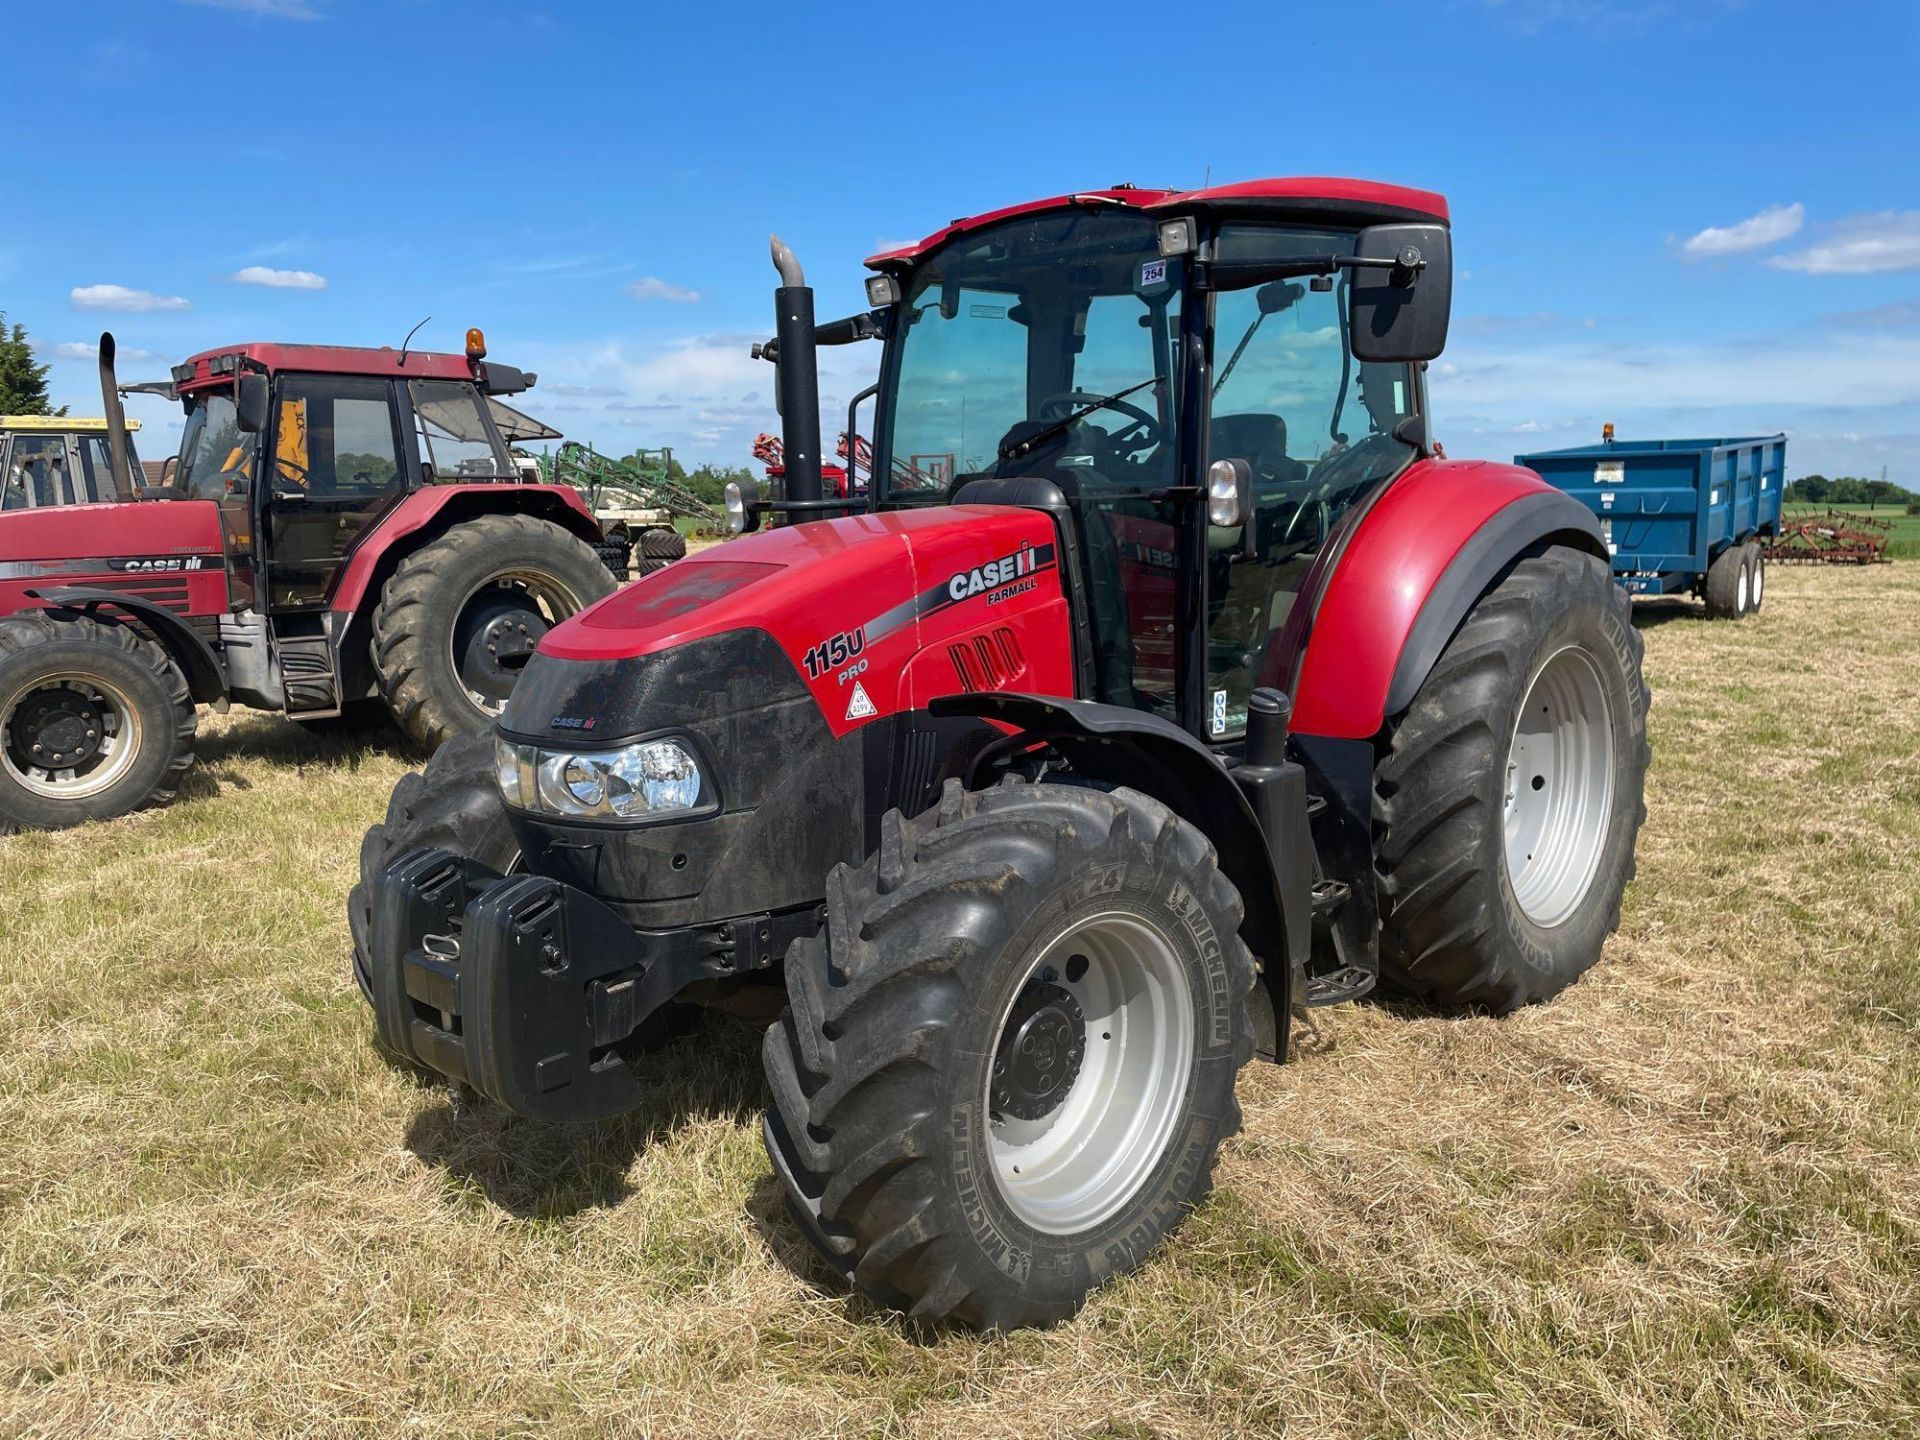 2014 Case IH Farmall 115U PRO 40Kph 4wd tractor with 2 spools, PUH on 440/65R24 front and 540/65R34